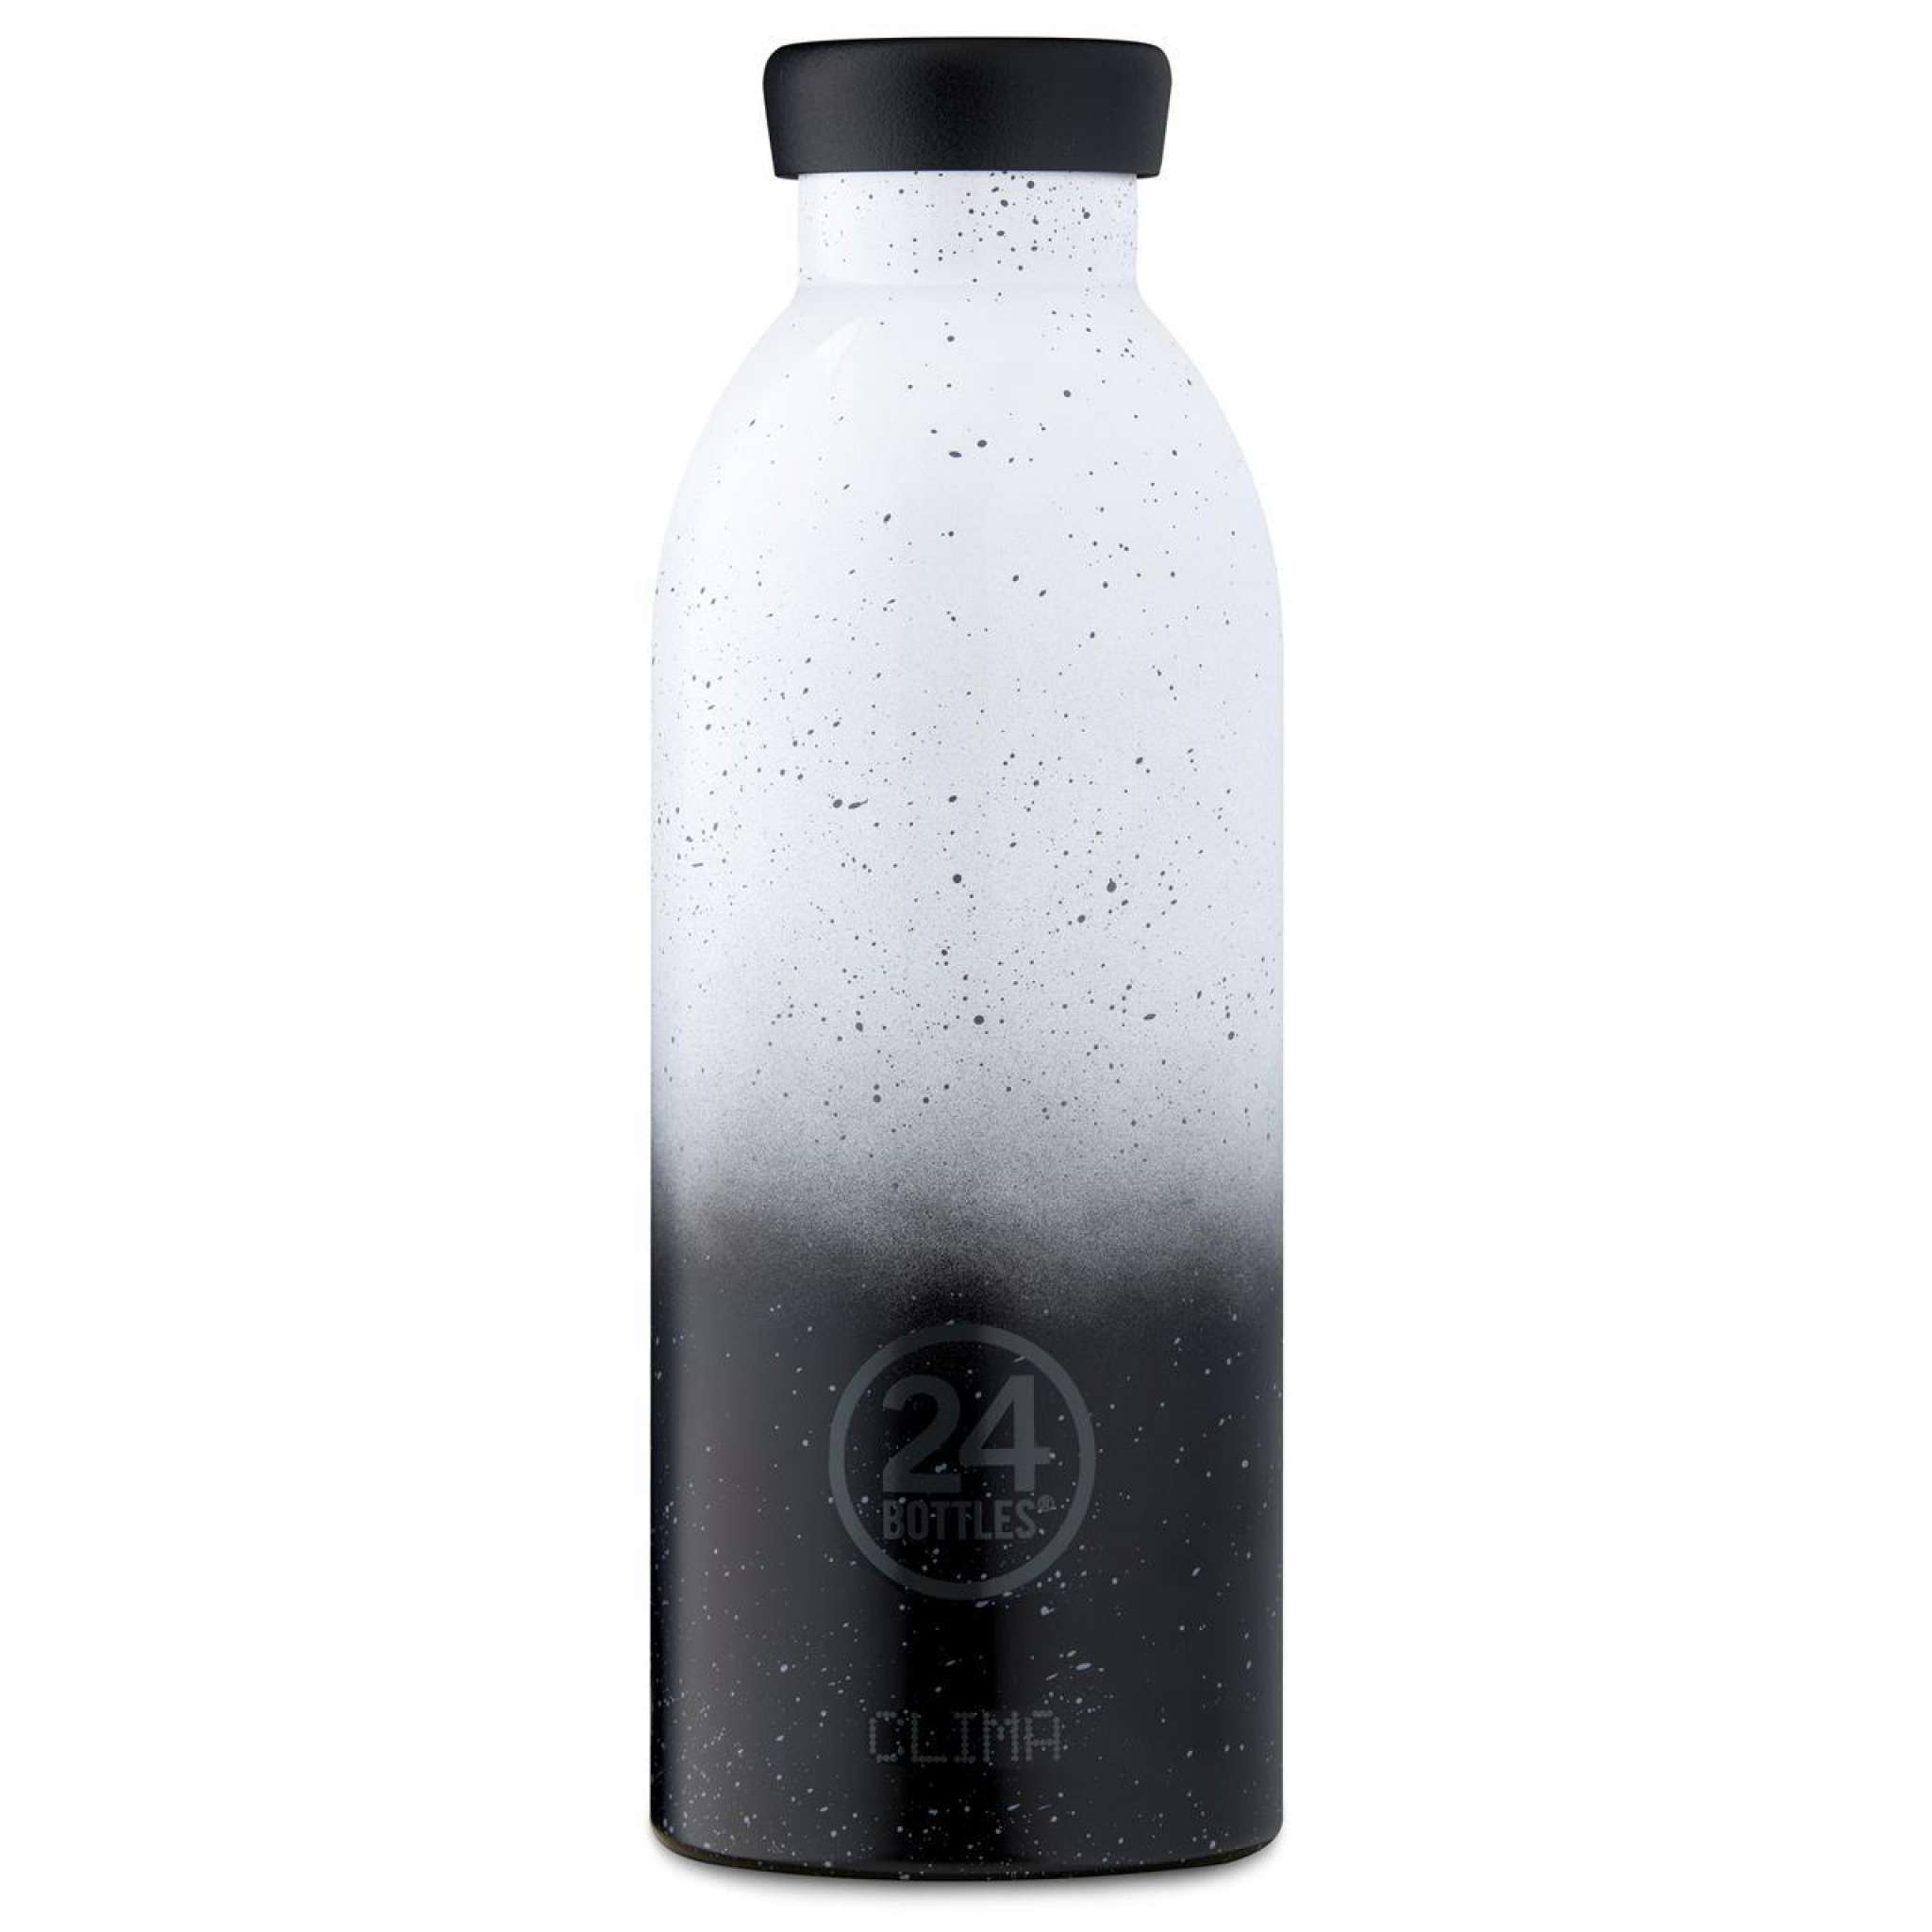 Clima 24Bottles 500 ml Eclipse